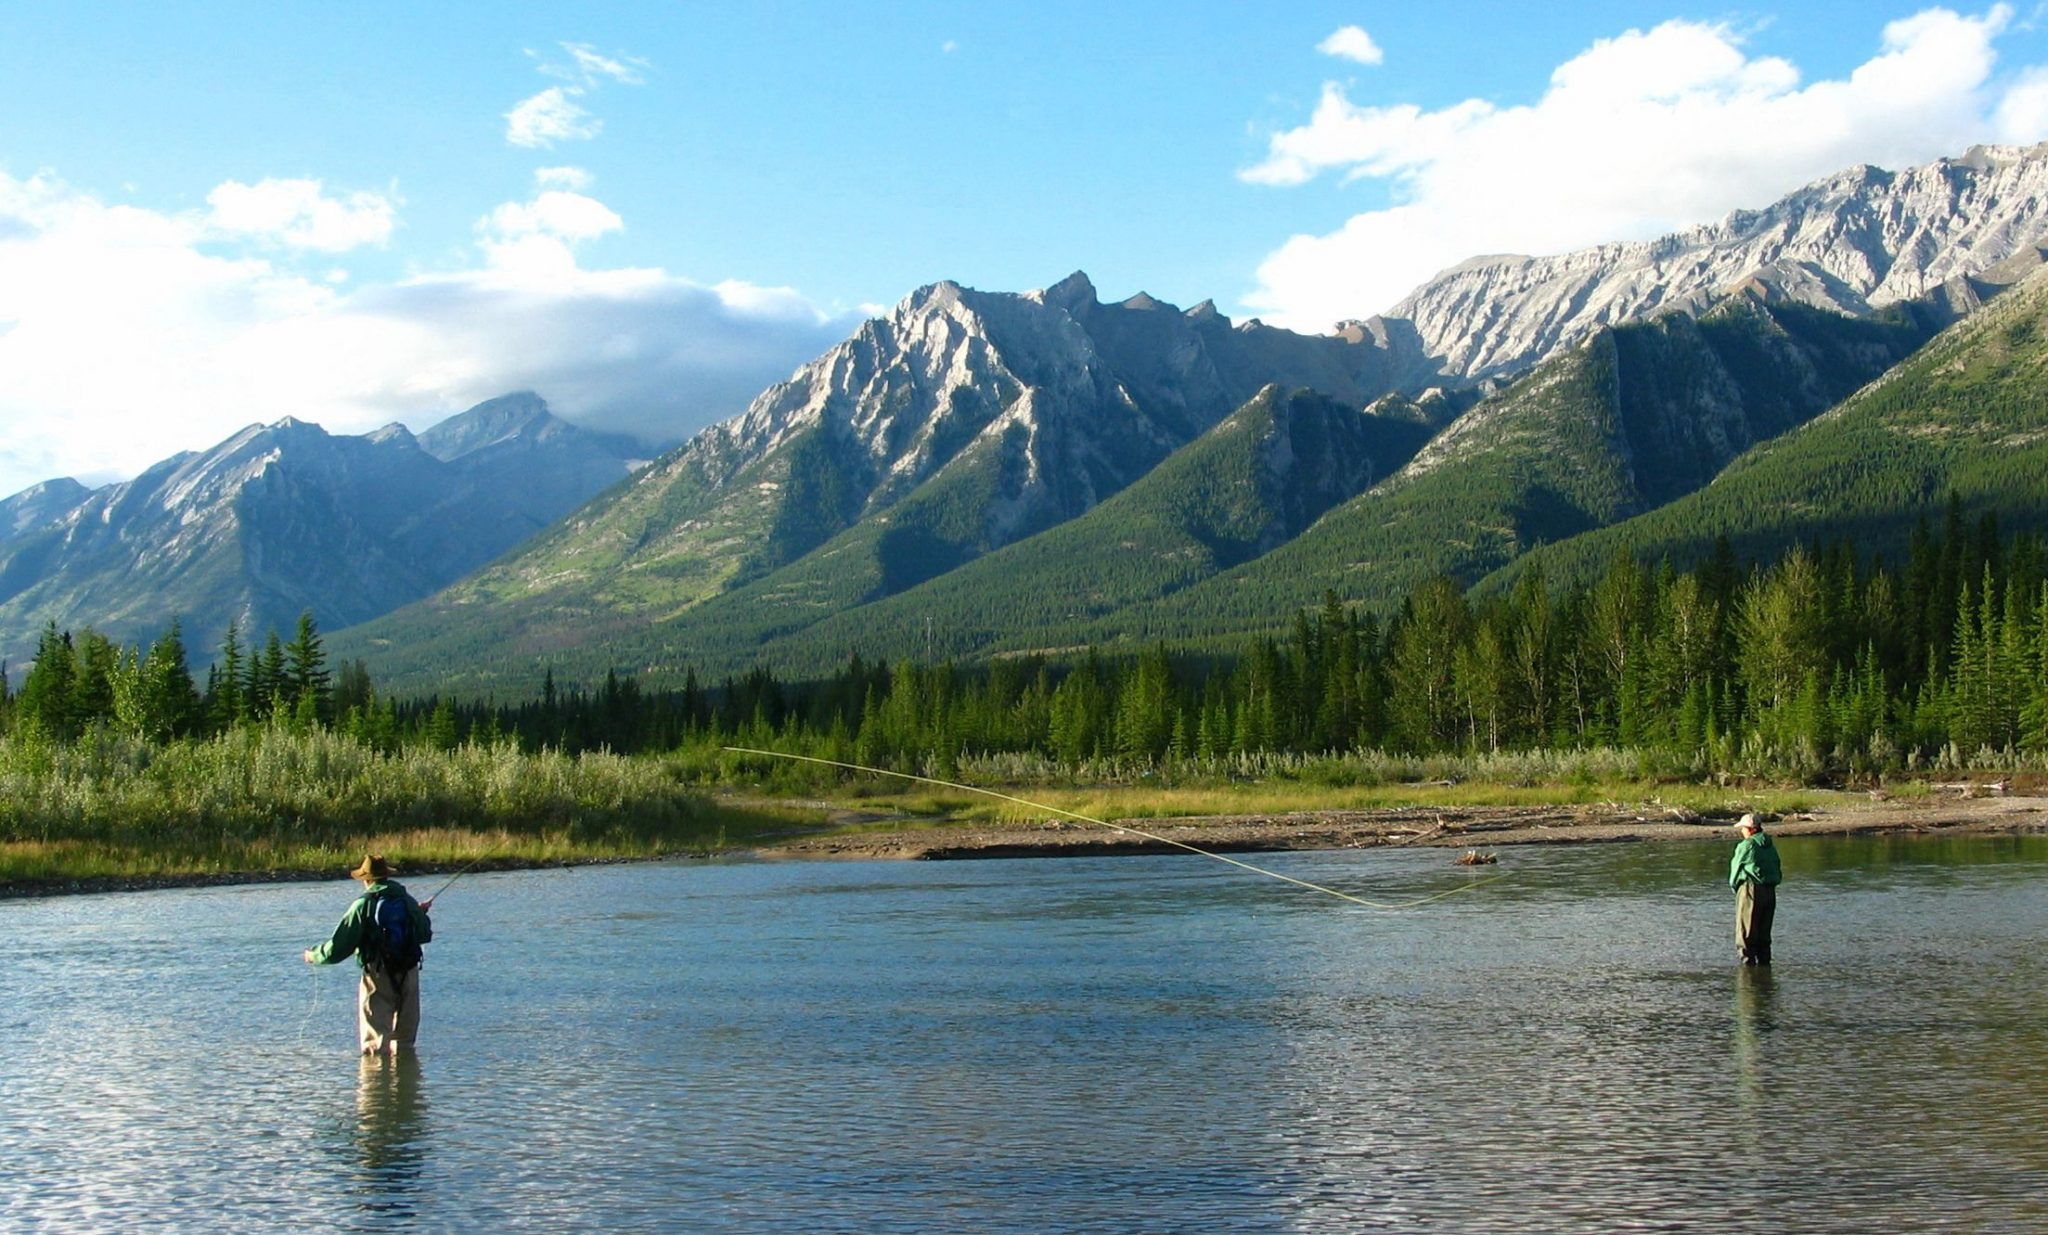 Wapiti Mount Engadine FIshing